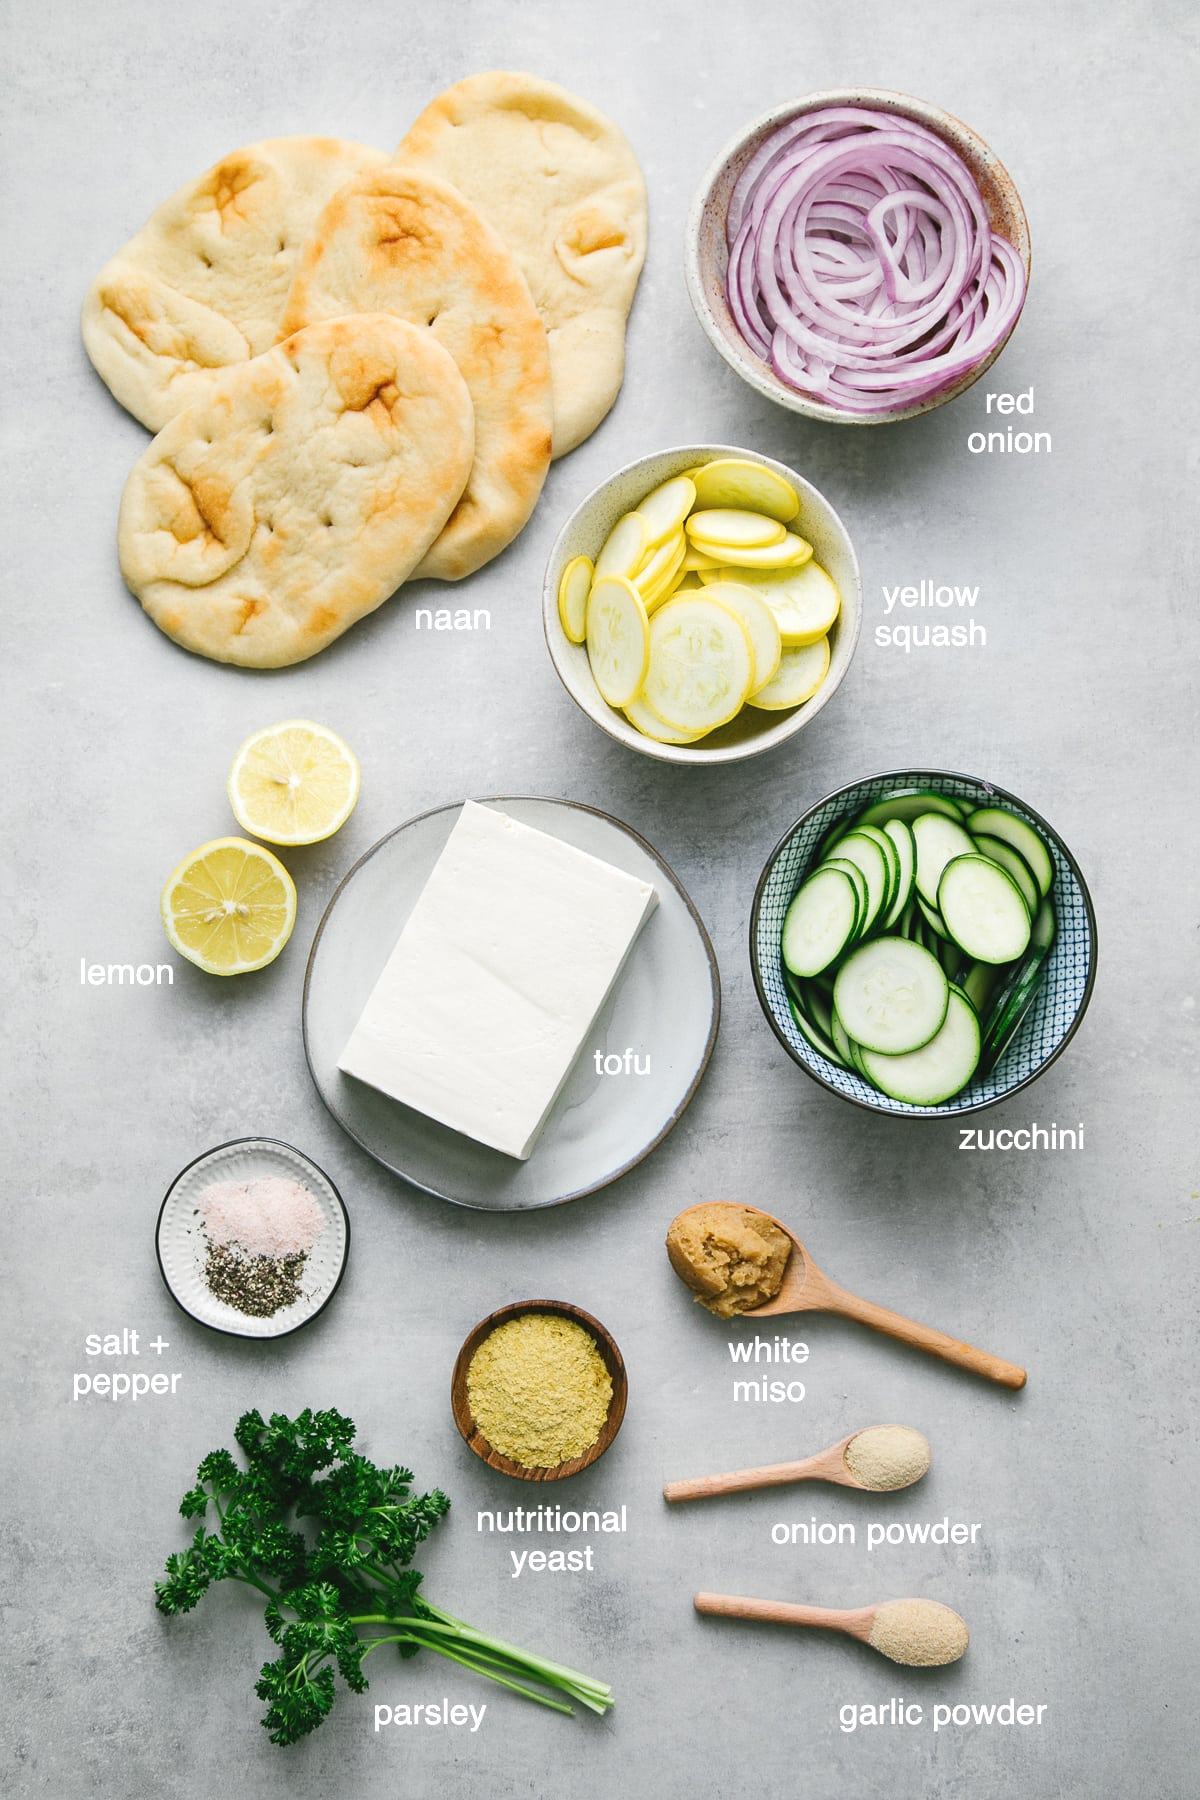 top down view of ingredients used to make vegan white pizza aka zucchini flatbread.